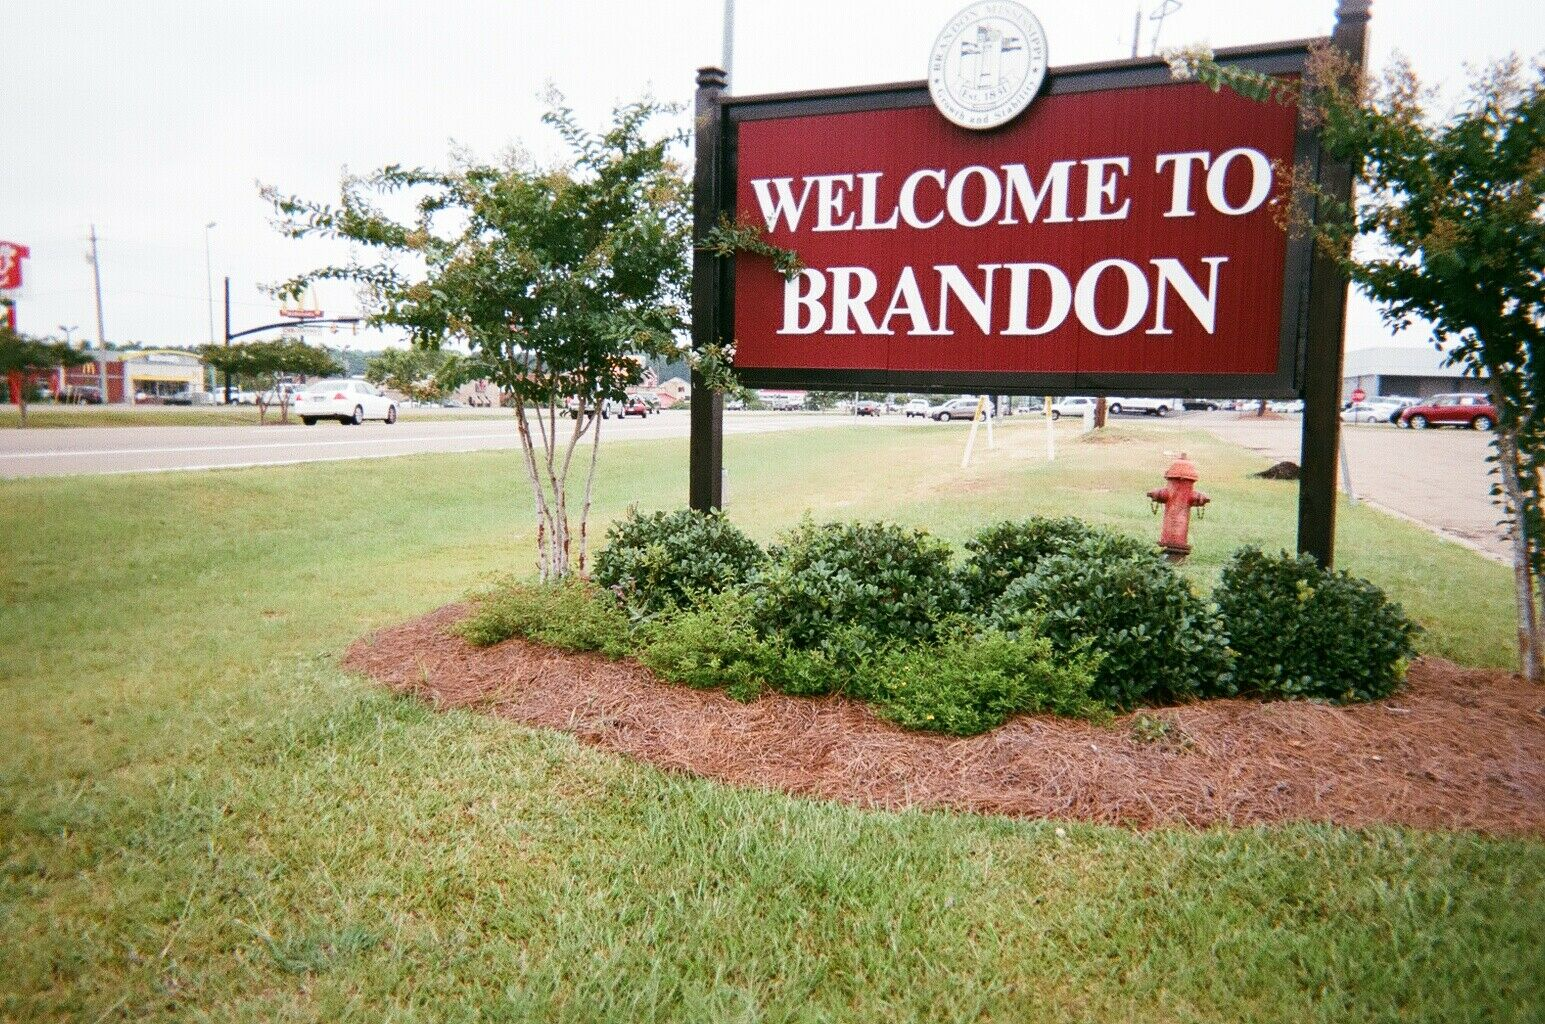 BRANDON LOT - LOW PRICE - LOW PAYMENTS - $3.25